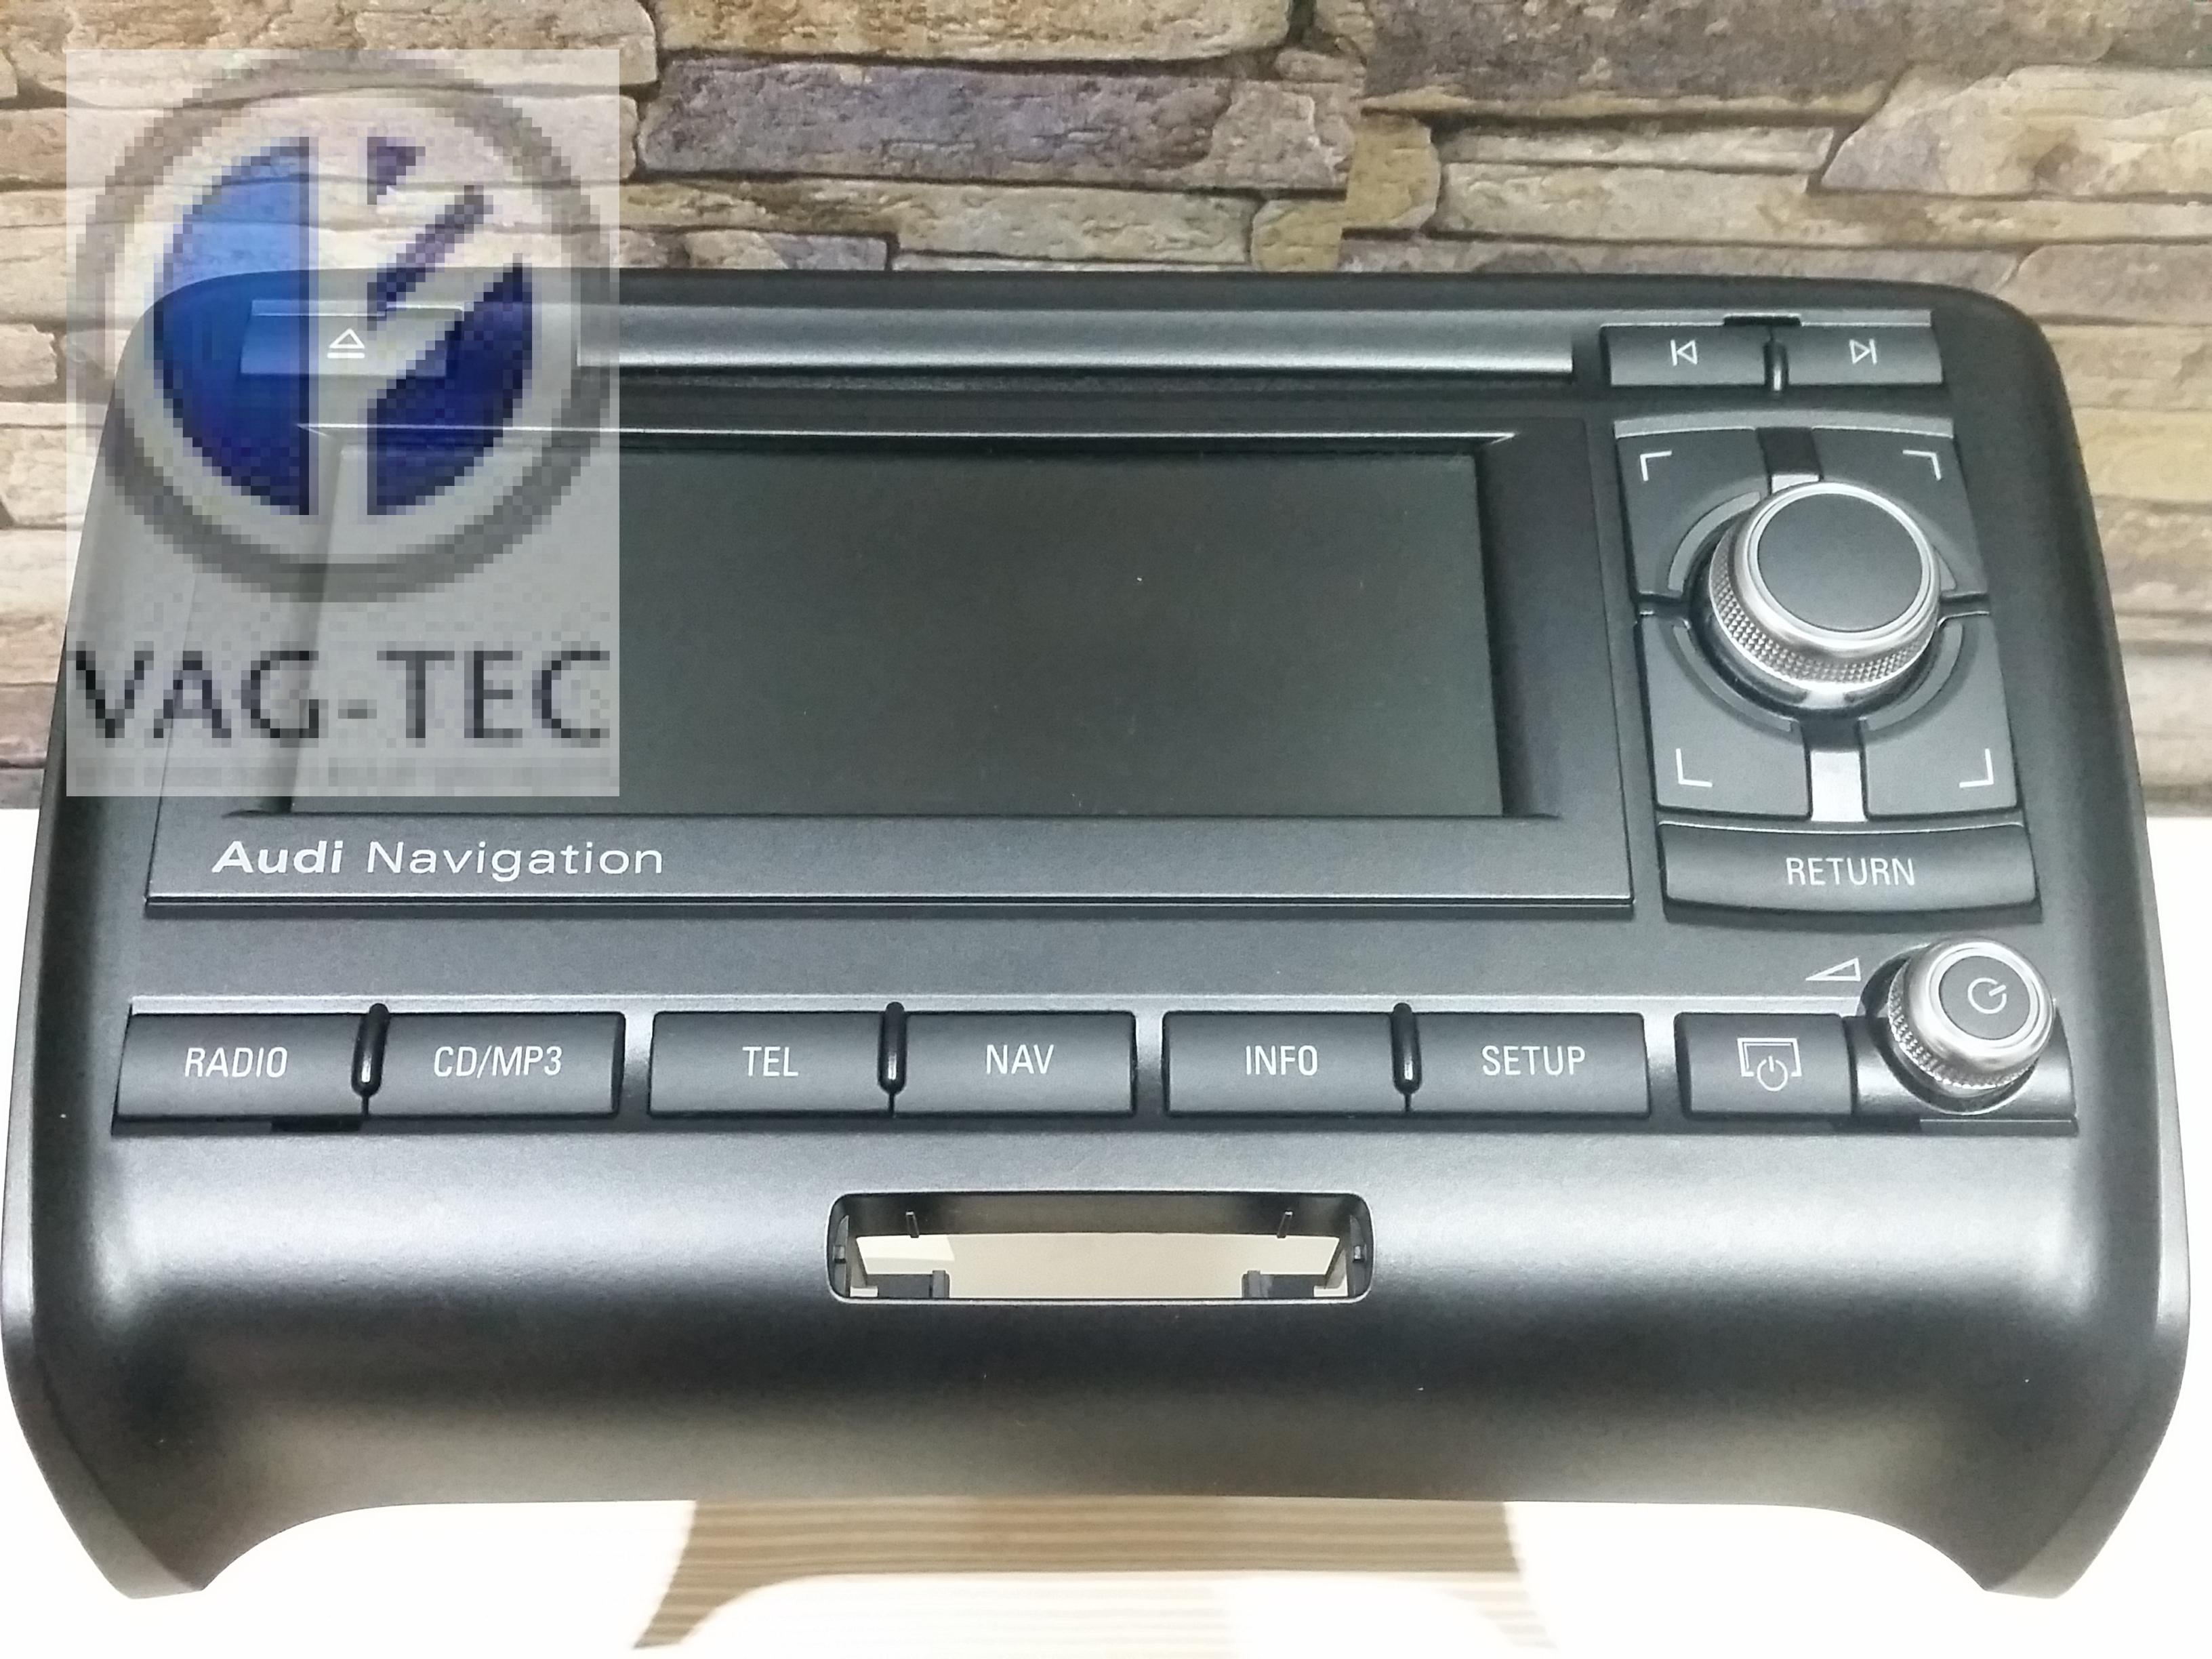 Audi Navigation Bns 5 0 Mmi 2011 A6 Wiring Diagram Does Not Require Any What So Ever Specific Retrofitting Following Original Radio Units Vehicles Iso Connectors Mp3 Car Stereo Audio